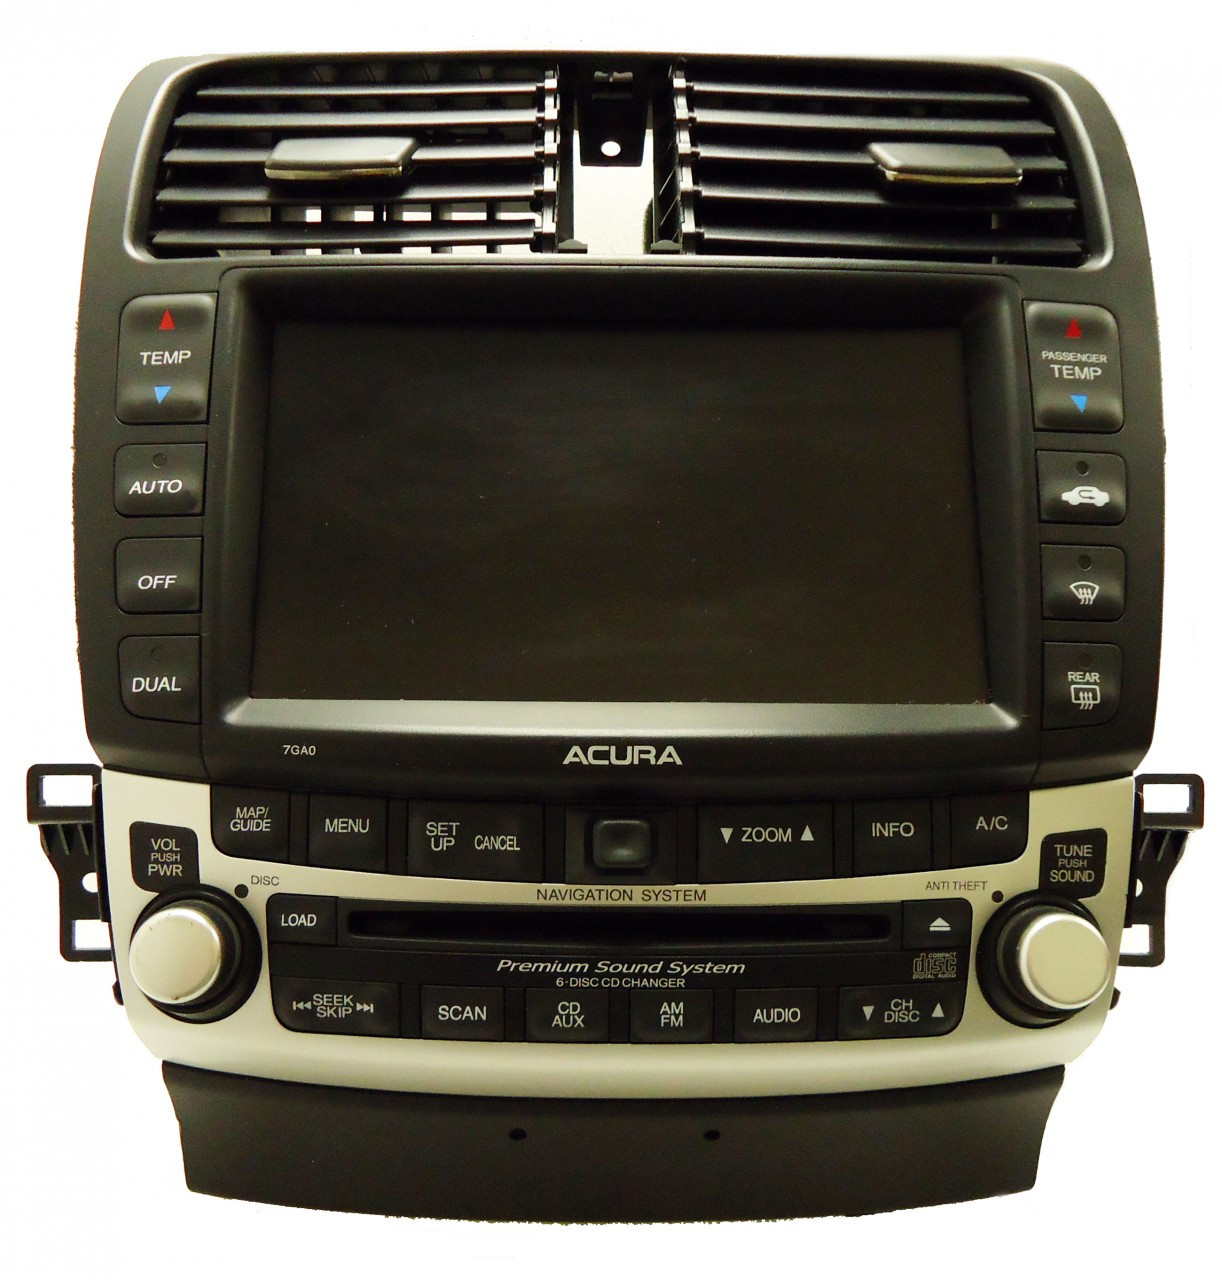 7GA0 04 Acura TSX Navigation GPS Radio 6 CD Changer Stereo